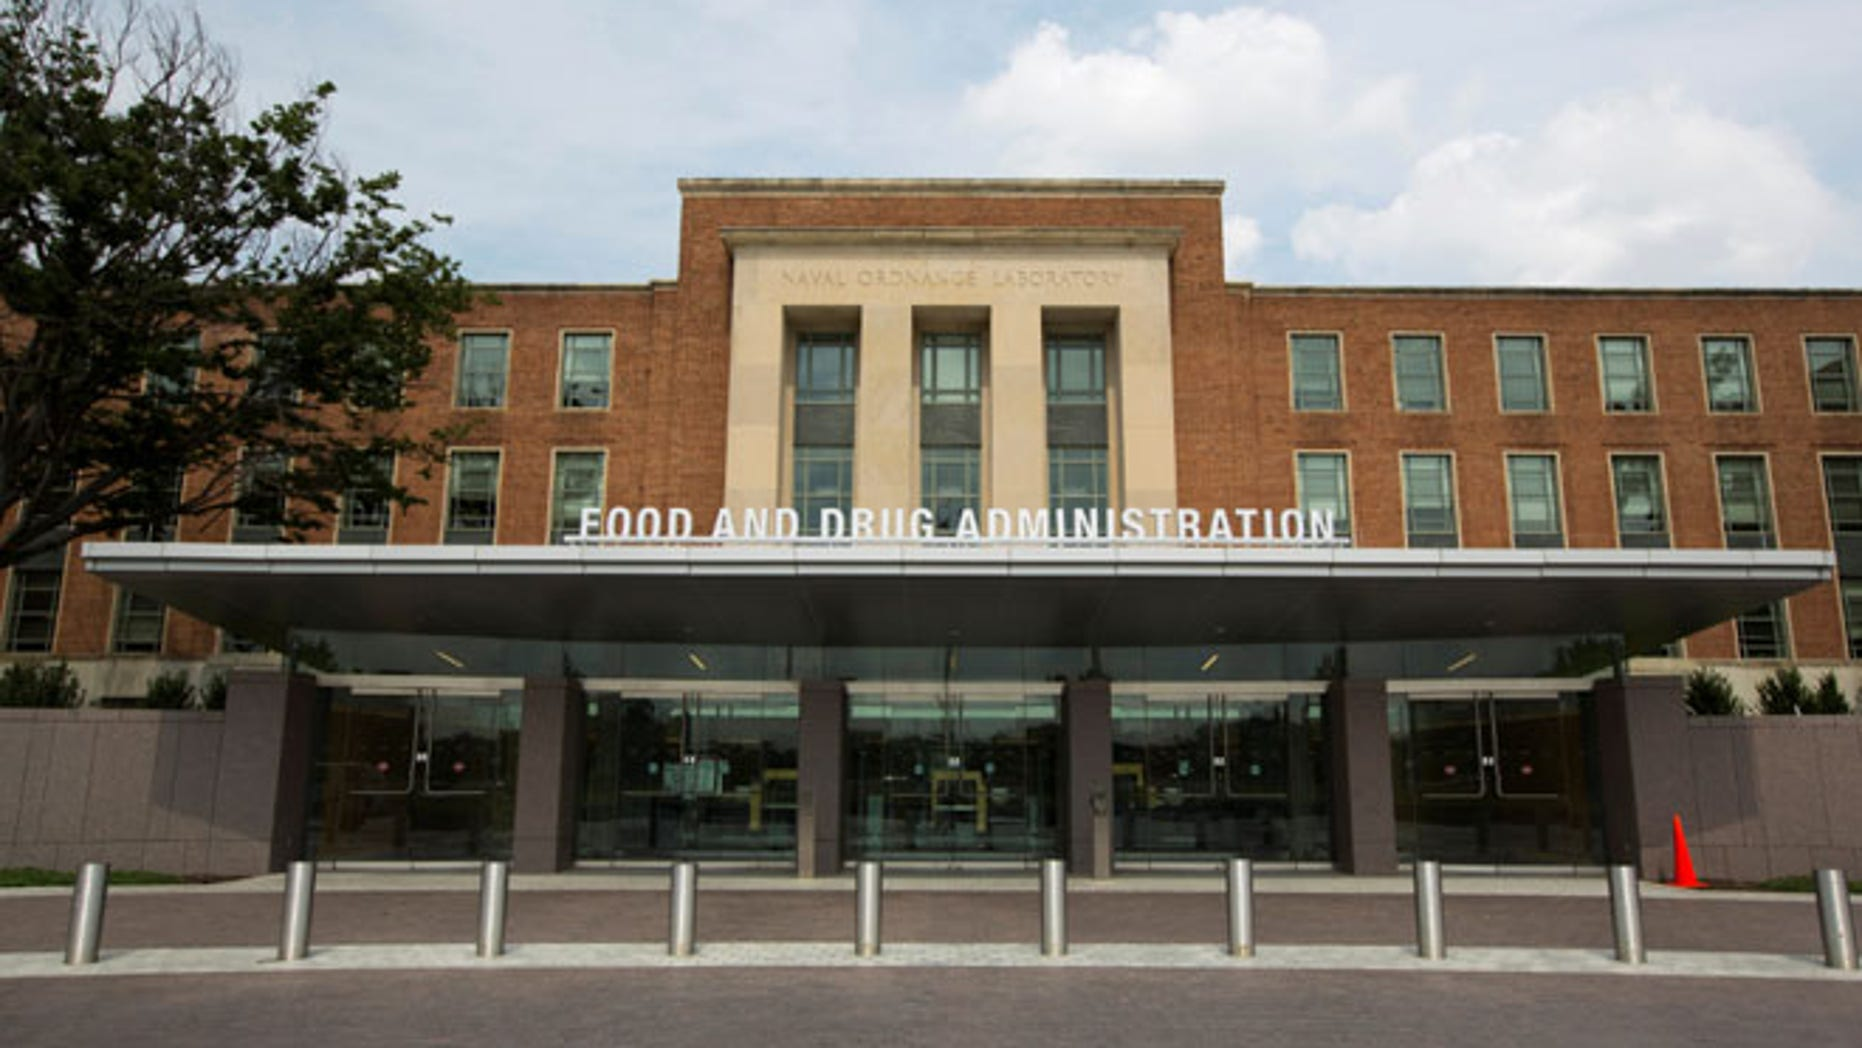 FILE: A view shows the U.S. Food and Drug Administration headquarters in Silver Spring, Maryland.